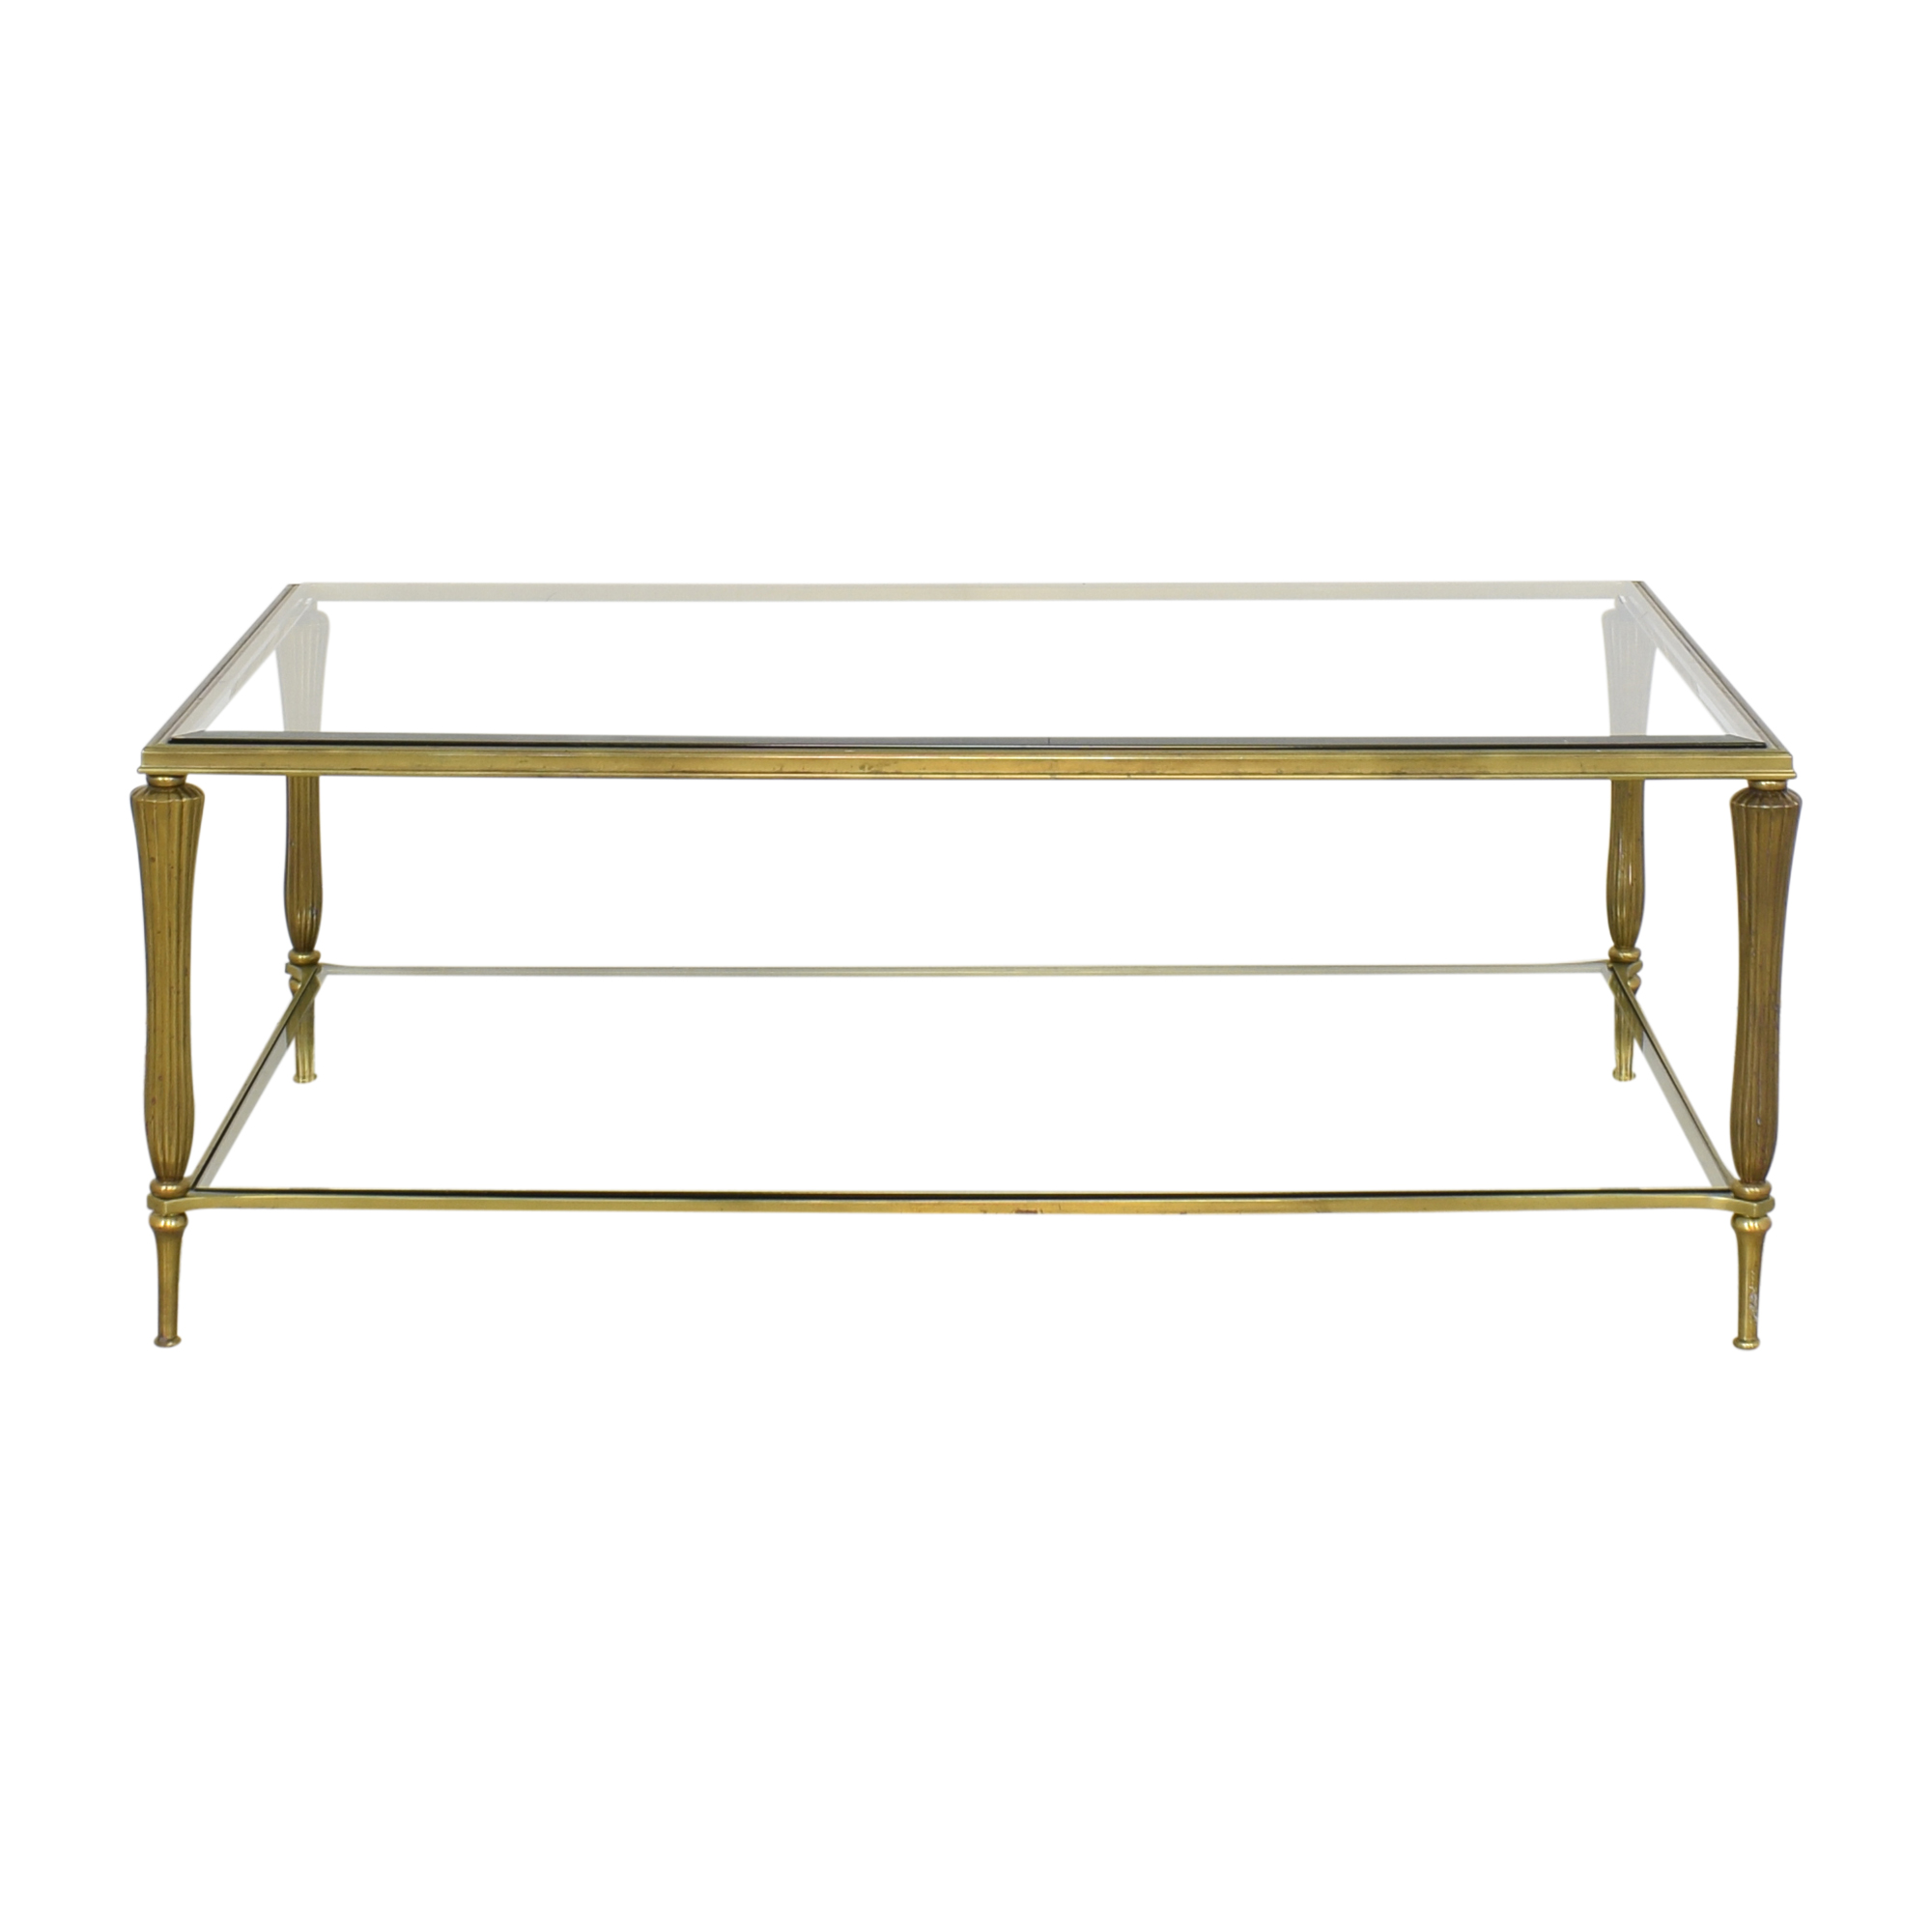 Ethan Allen Ethan Allen Two Tier Coffee Table dimensions